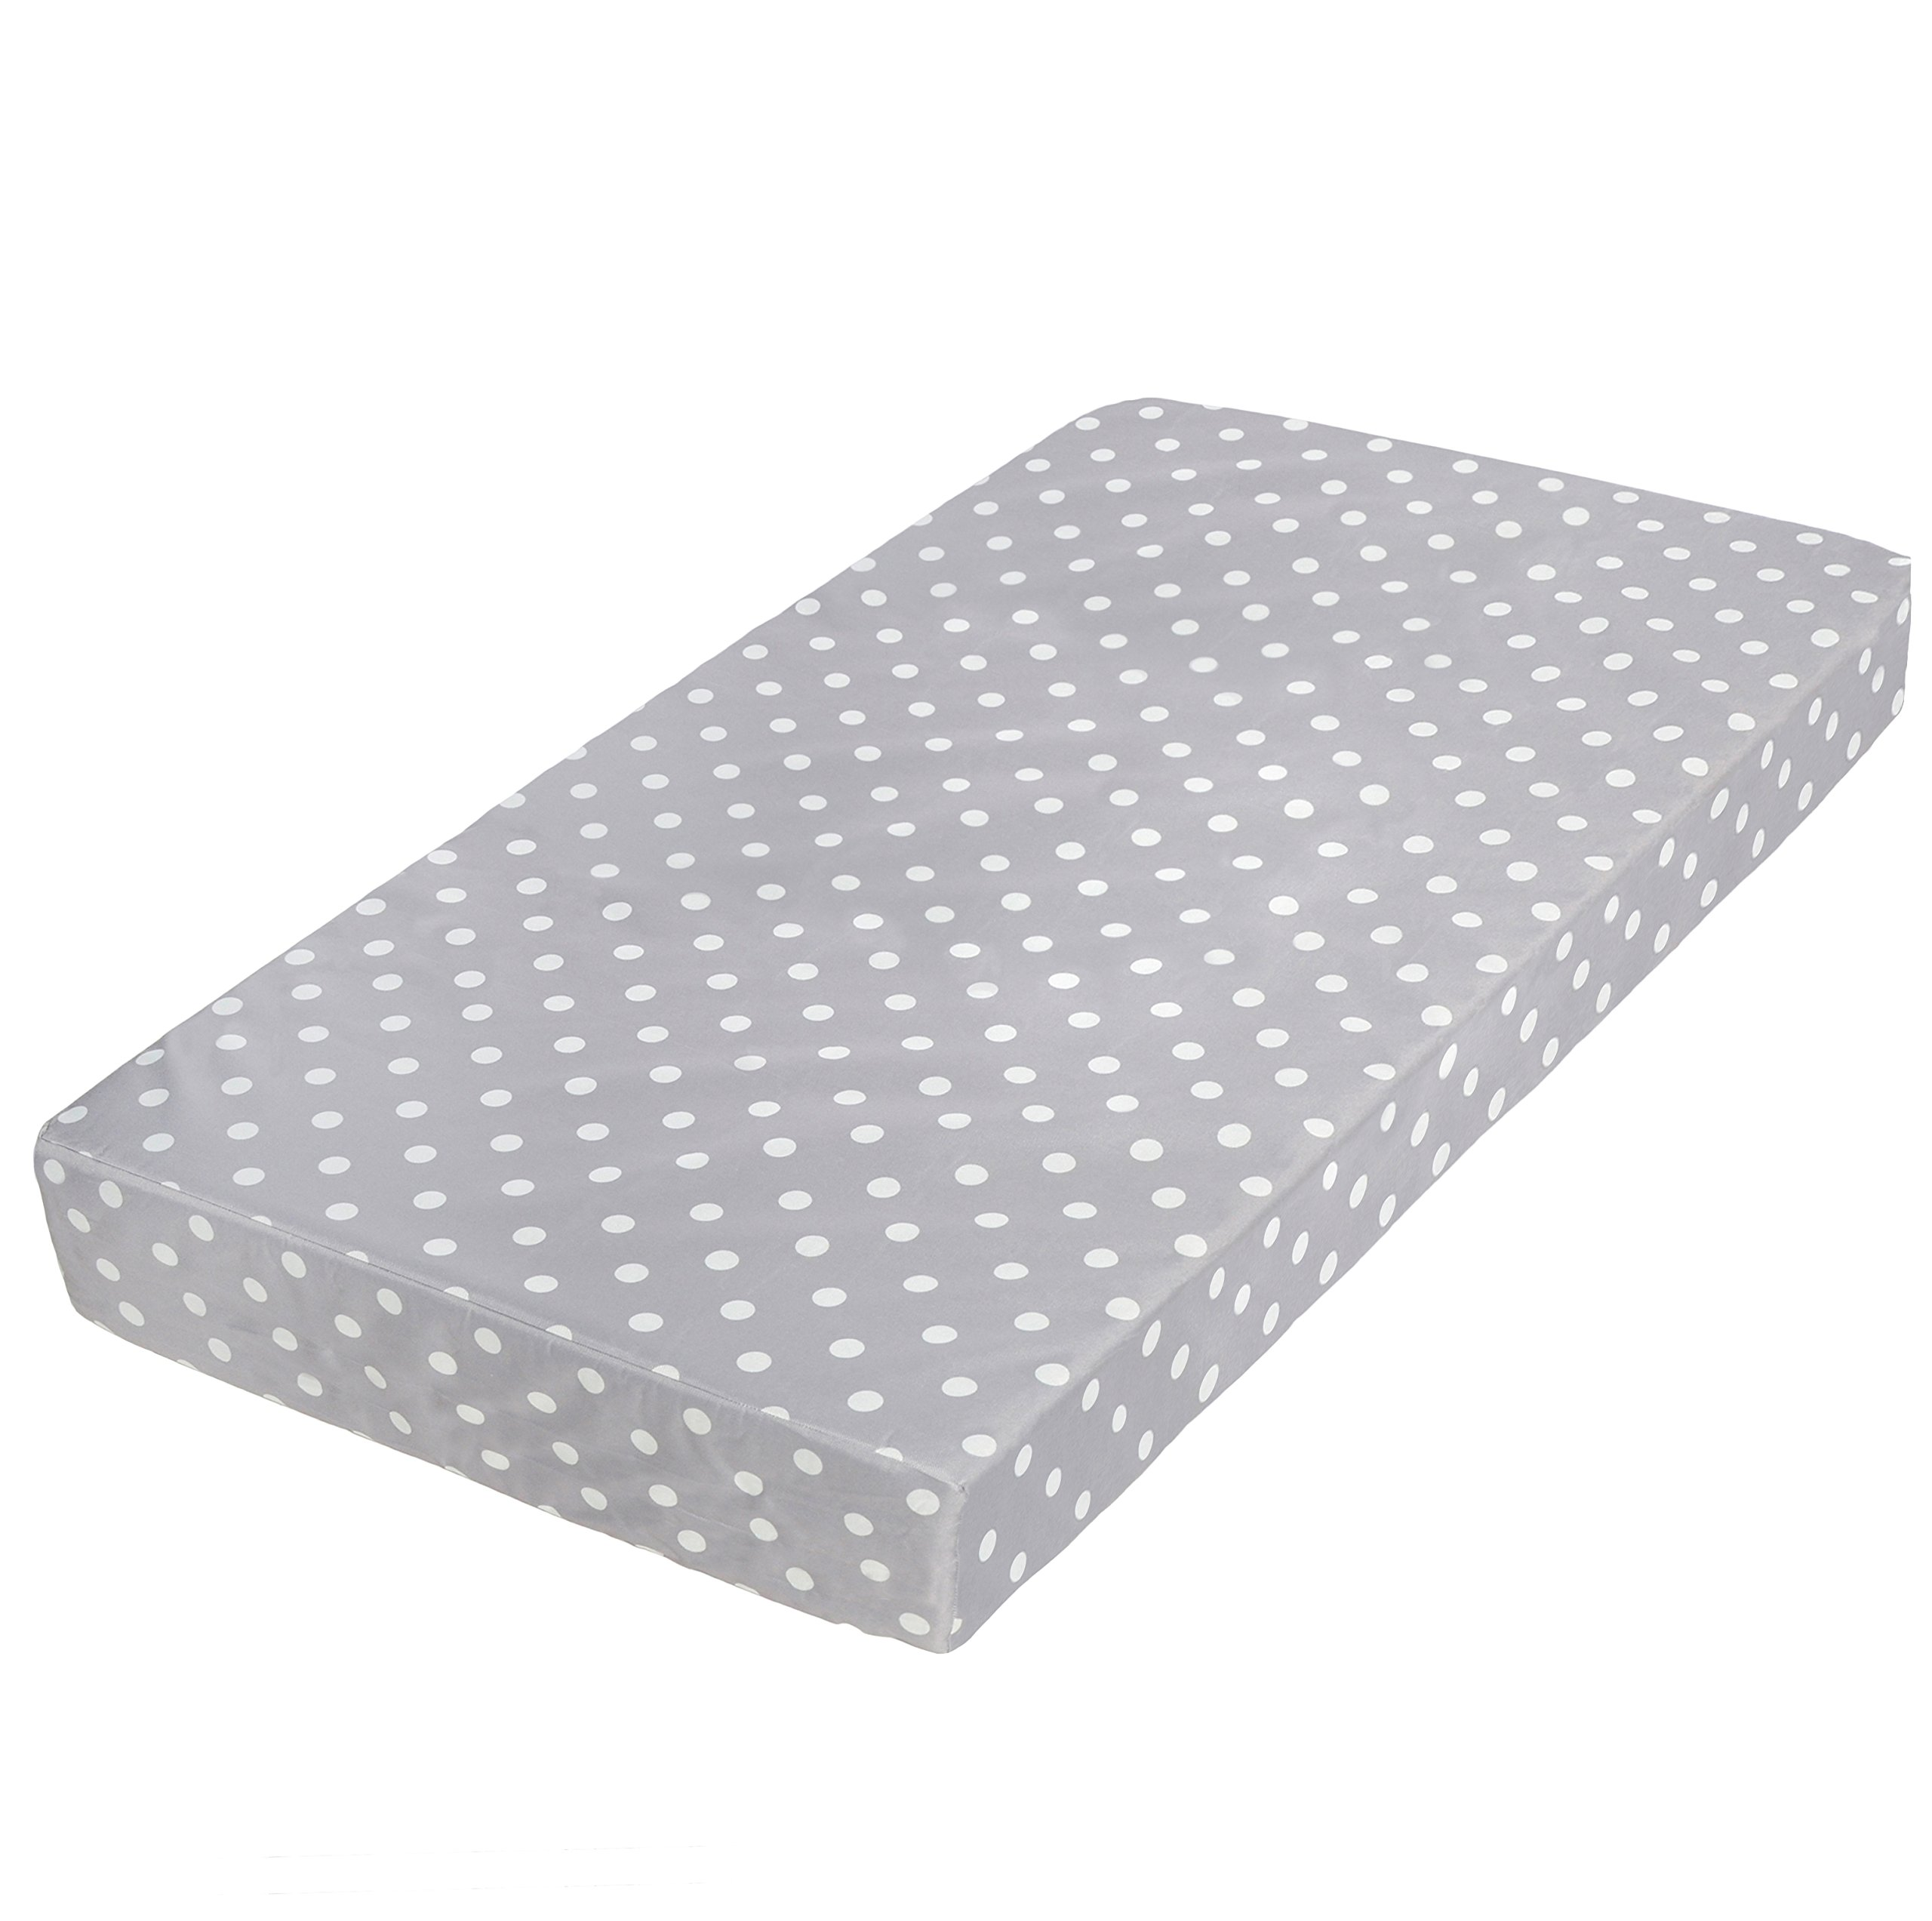 Milliard Premium Memory Foam Hypoallergenic Toddler Bed and Next Stage Baby Crib Mattress with Waterproof Cover- 27.5 inches x 52 inches x 5.5 inches